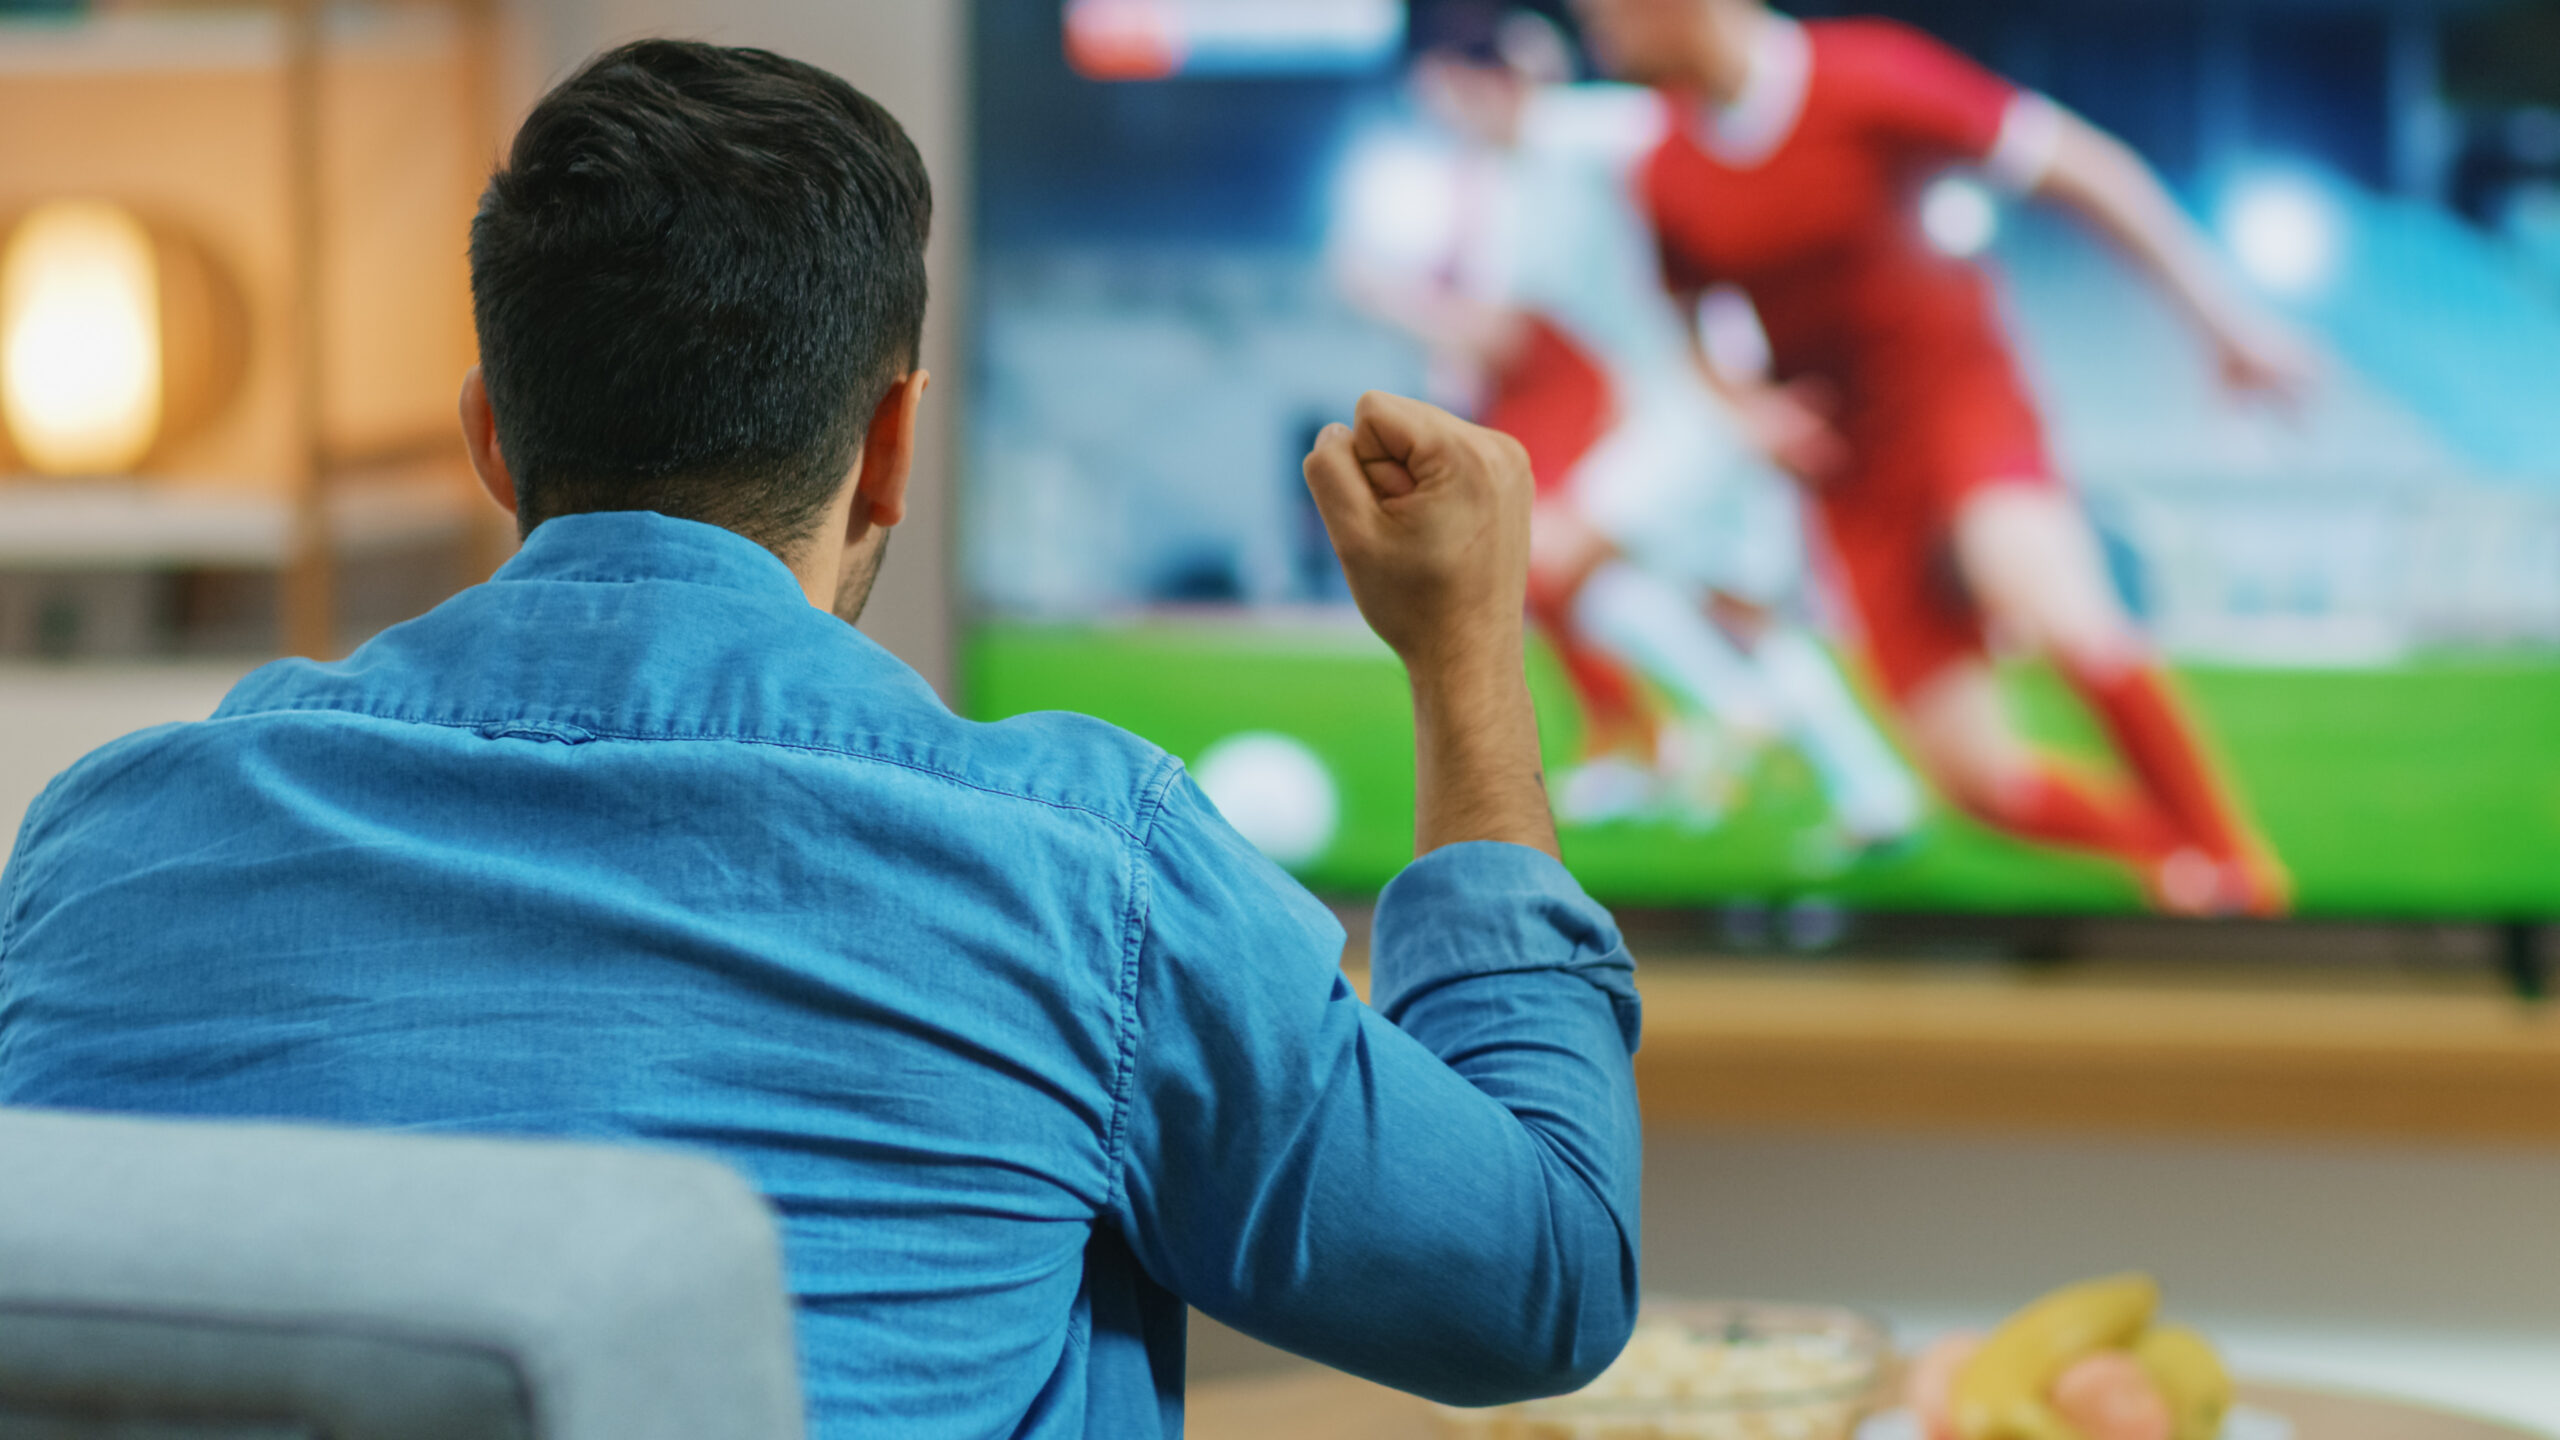 At Home Sports Fan Watches Important Soccer Match on TV, He Aggressively Clenches the Fist, Cheering for His Team.